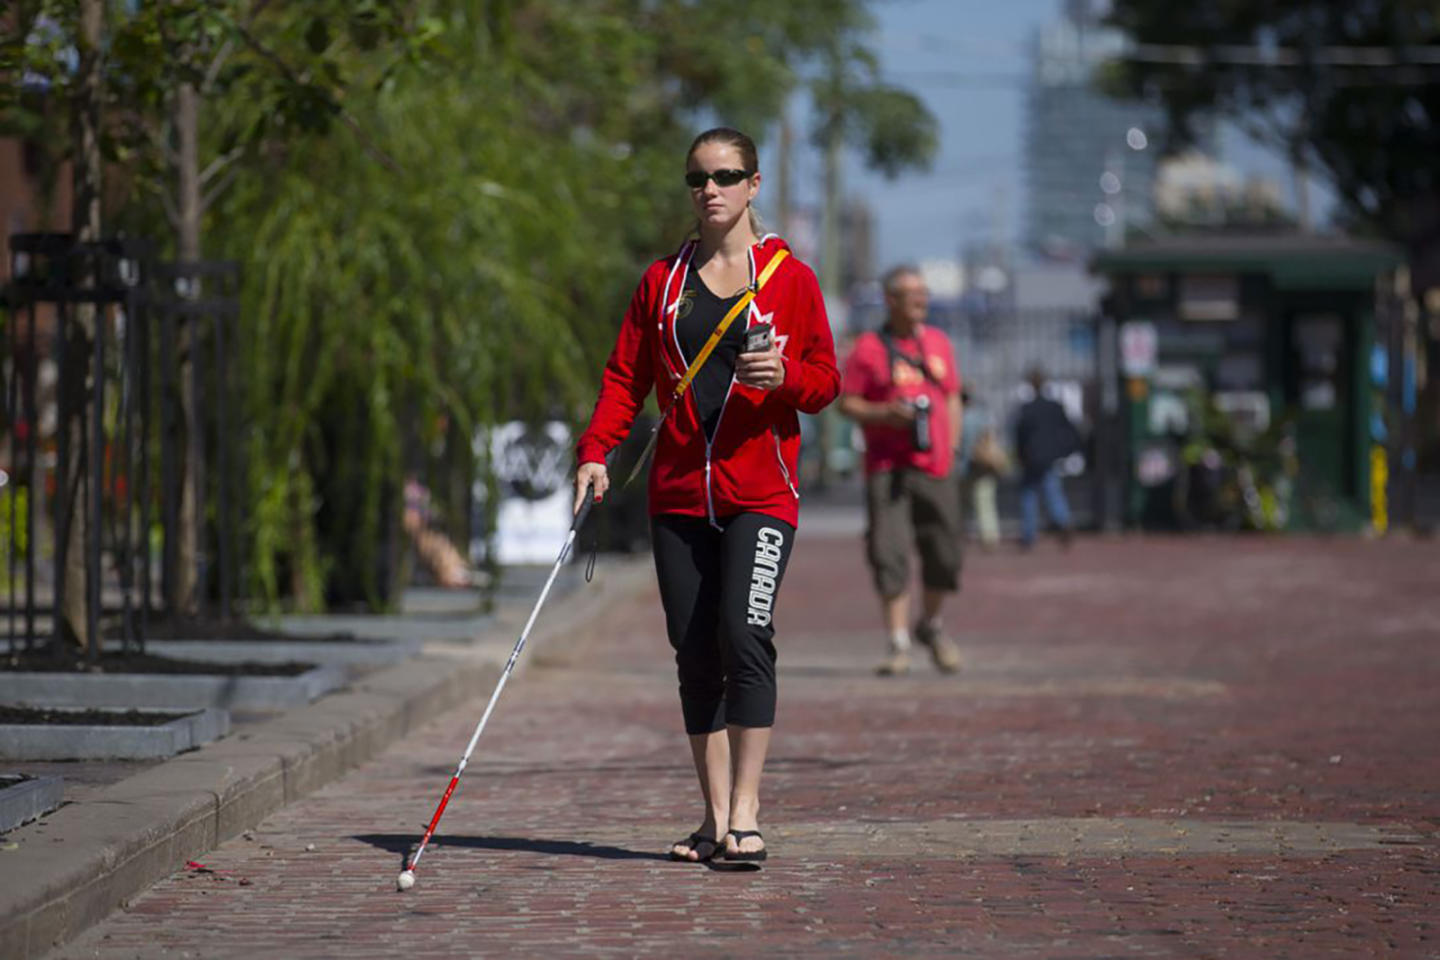 An image of a blind woman walking with a seeing stick holding a phone